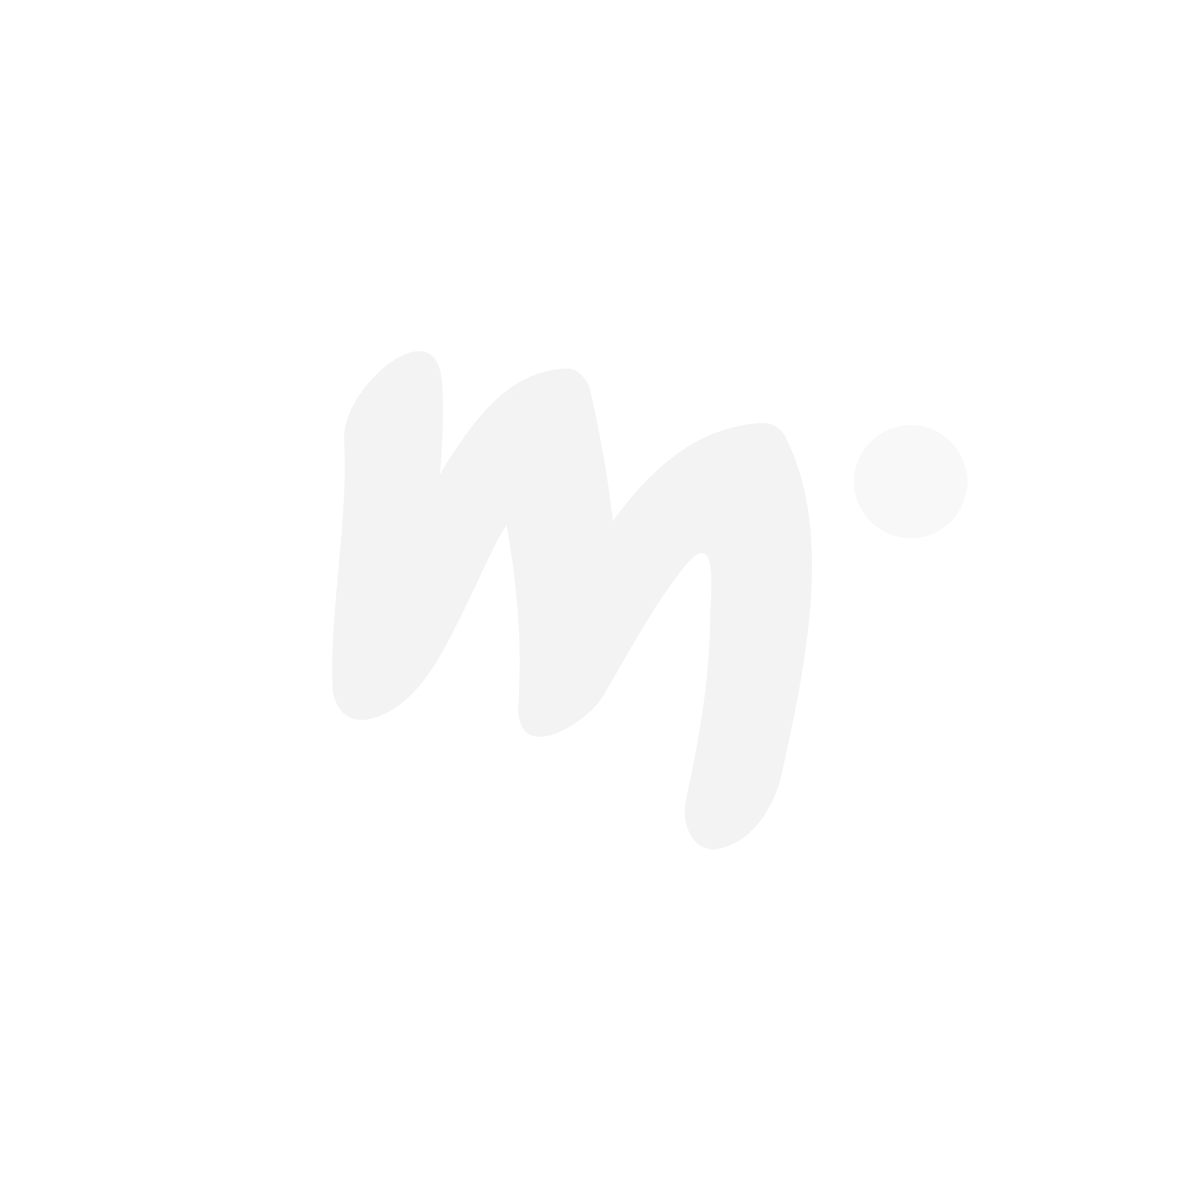 Moomin Tray Puzzle Set 2 x 20 Pieces